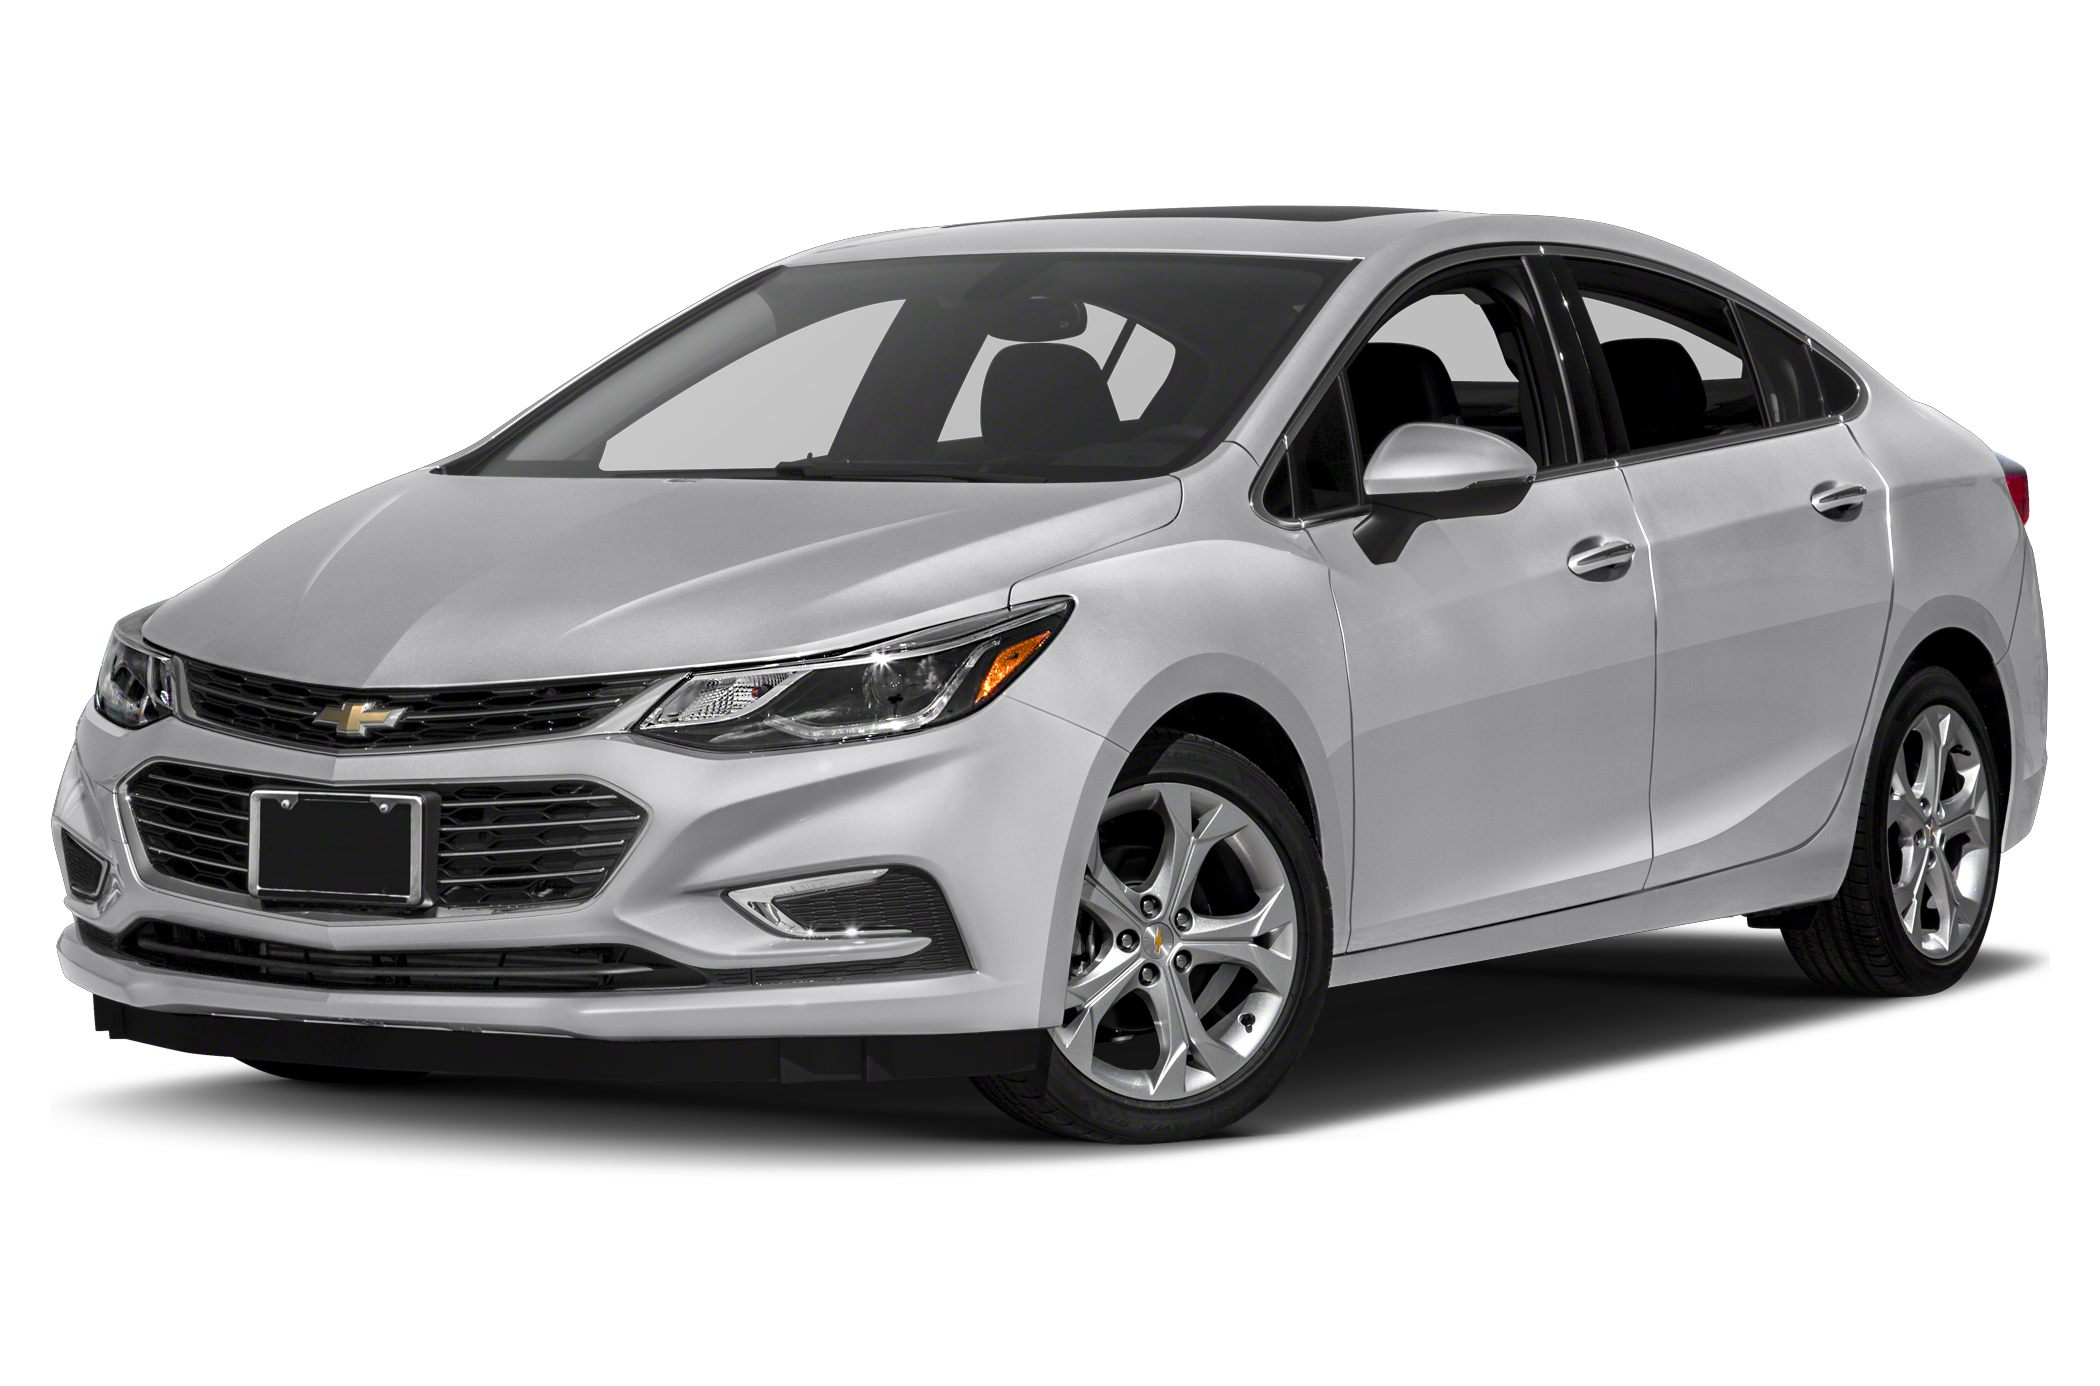 2017 chevrolet cruze deals prices incentives leases overview carsdirect. Black Bedroom Furniture Sets. Home Design Ideas